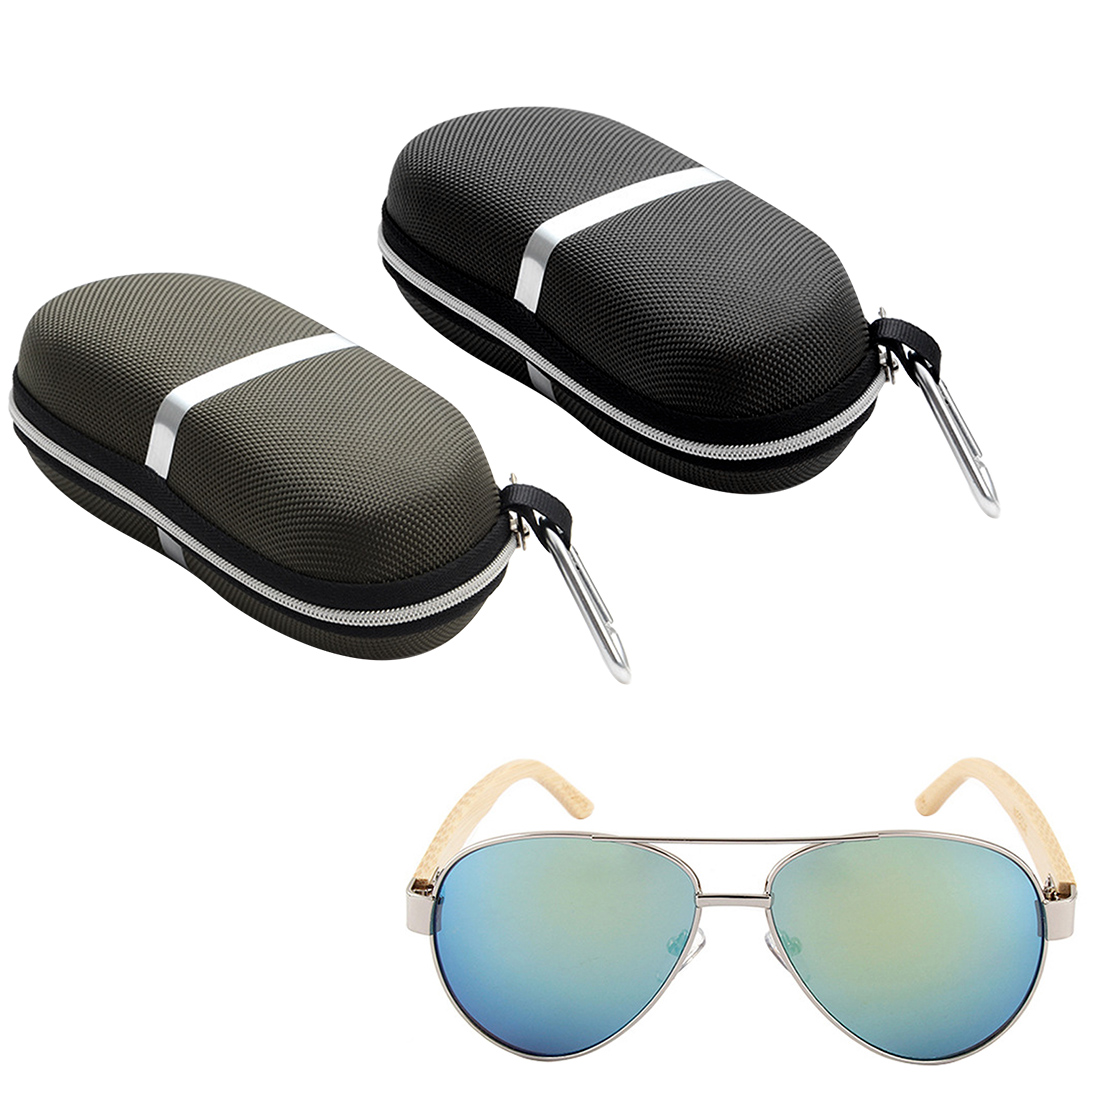 New lentes de contacto de color 2 Colors Sunglasses Reading Glasses Carry Bag Hard Zipper Box Travel Pack Pouch Case in Eyewear Accessories from Apparel Accessories